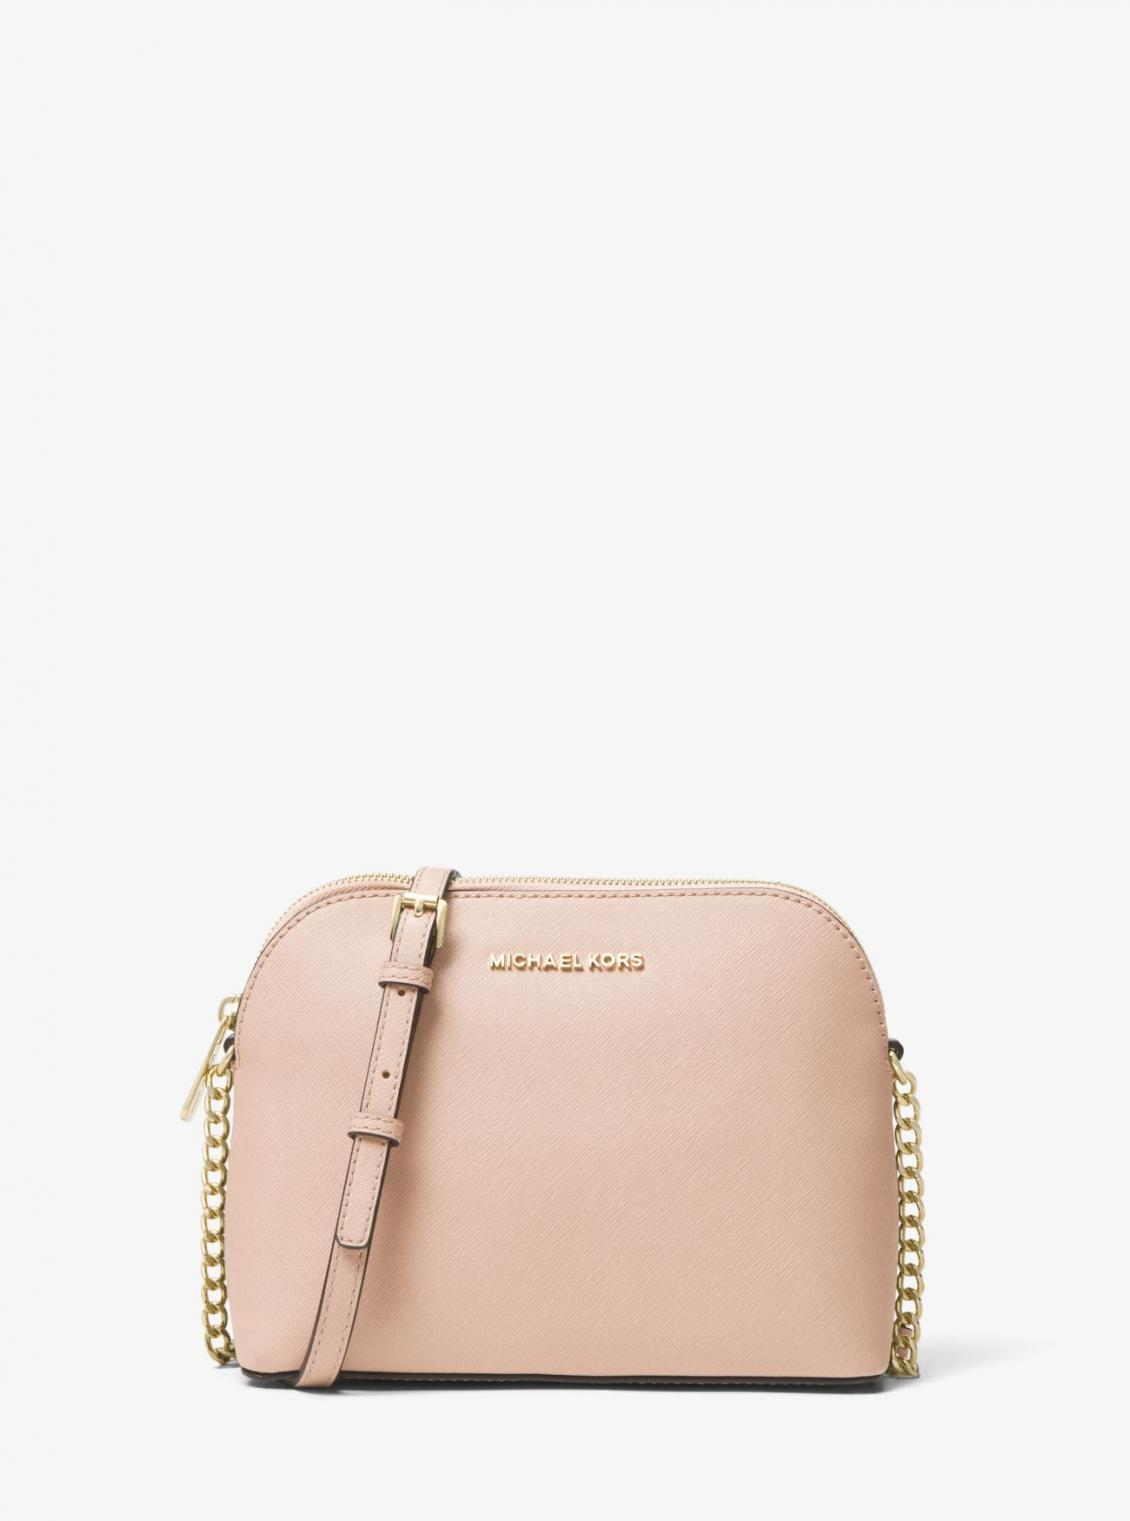 sac rose michael kors